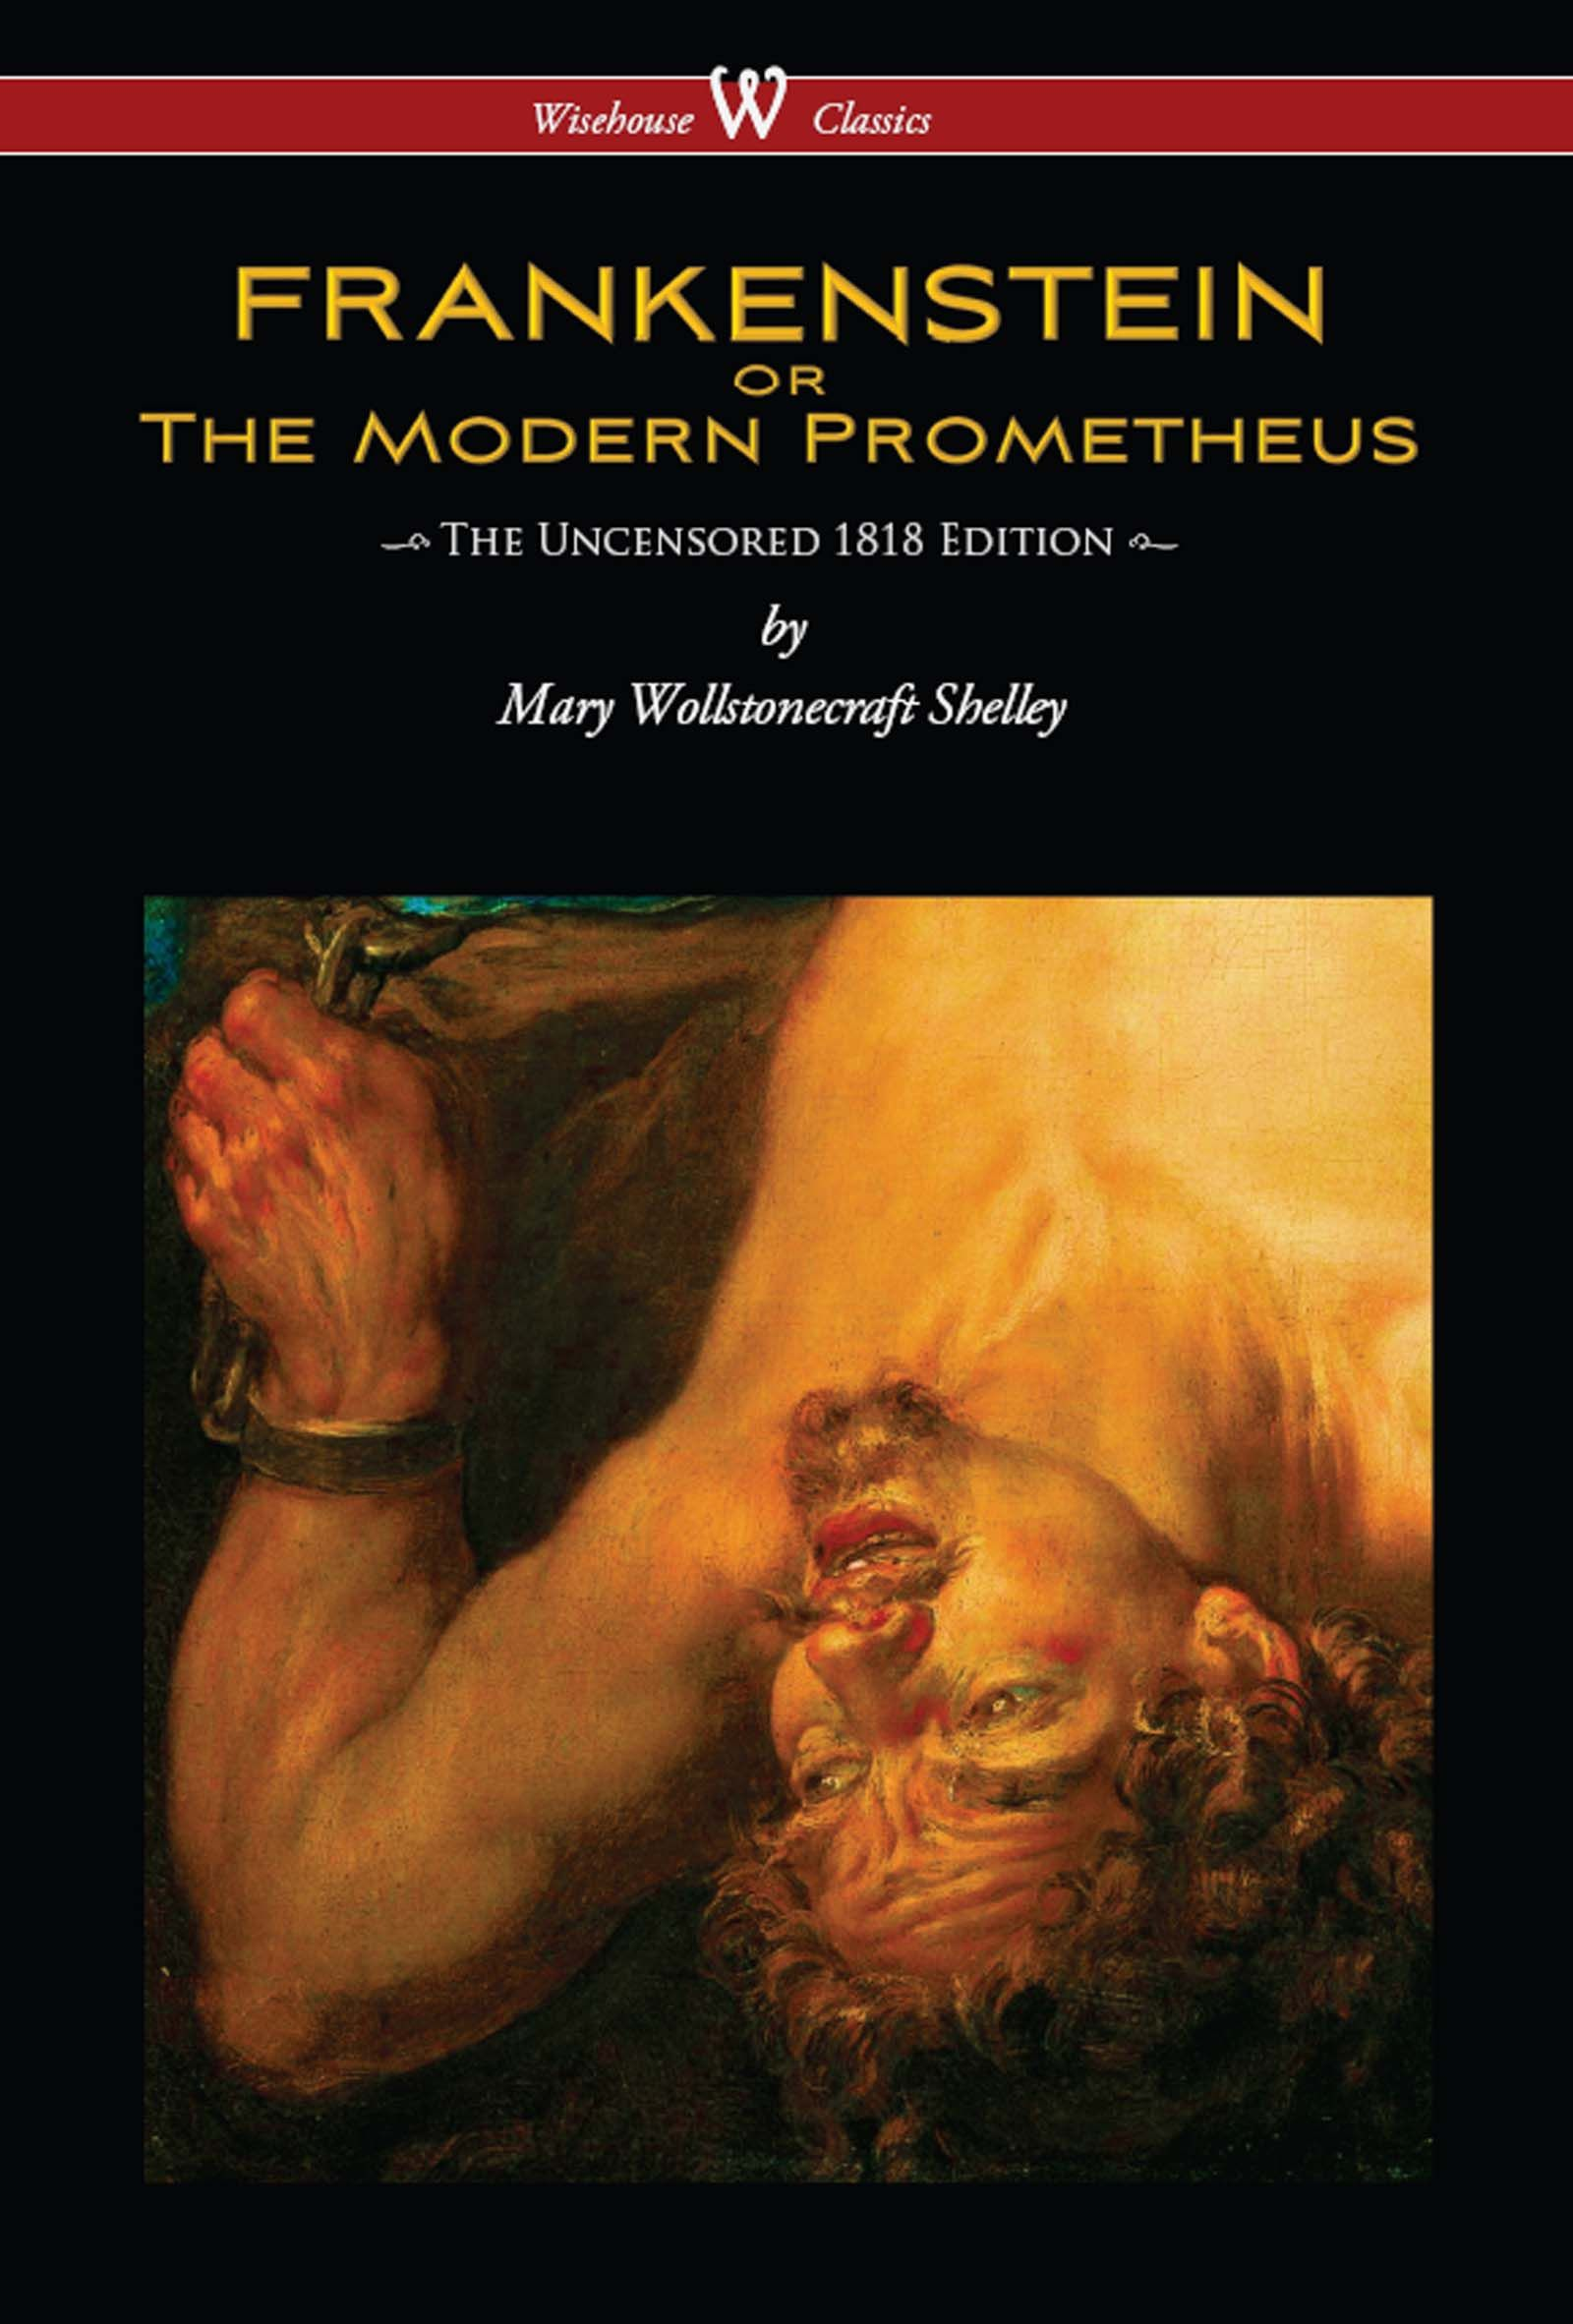 frankenstein prometheus Free kindle book and epub digitized and proofread by project gutenberg.